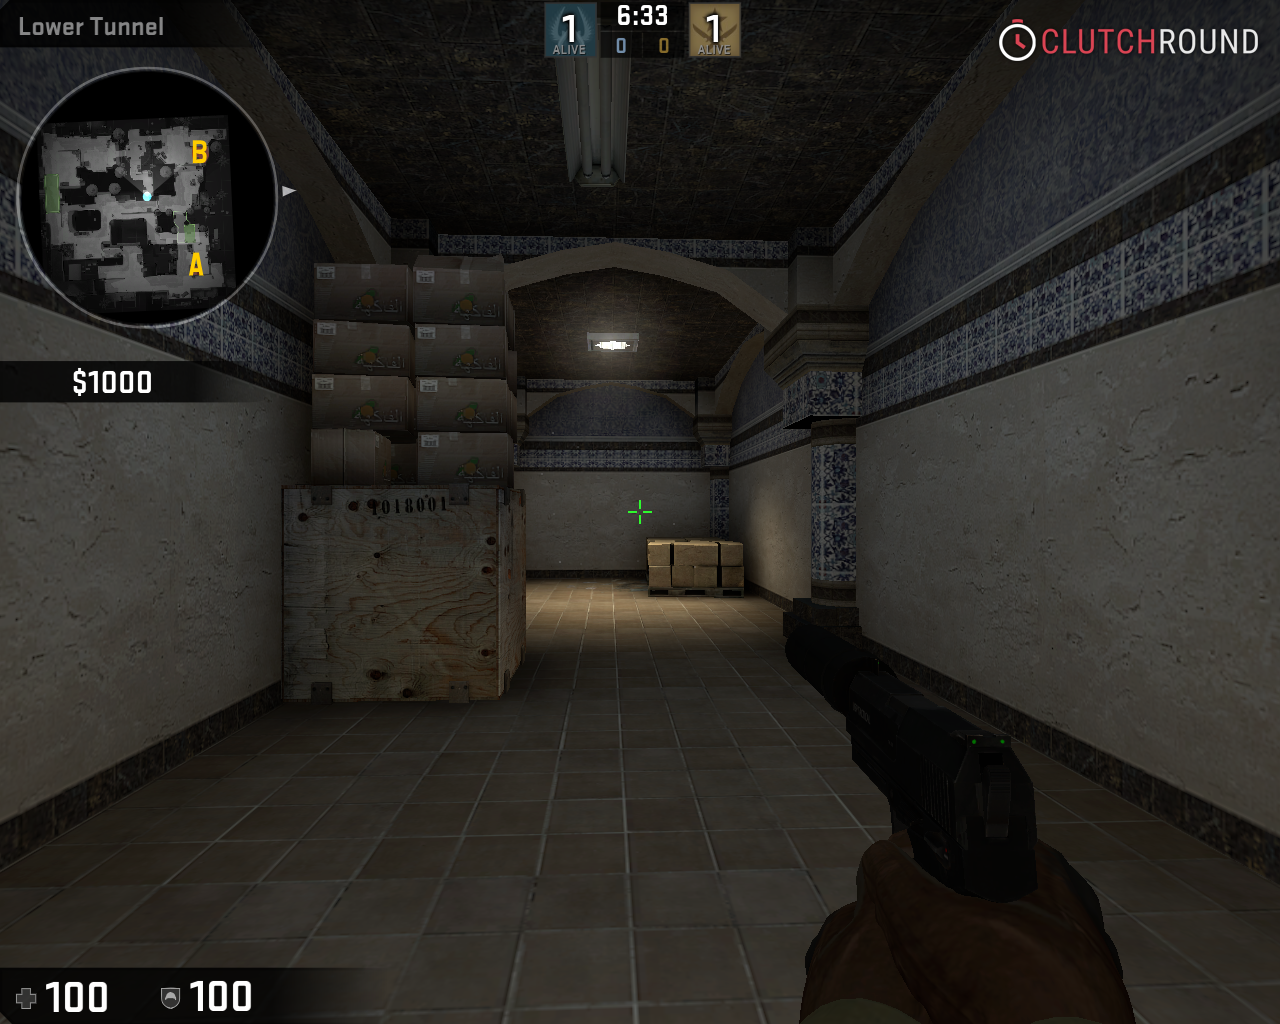 CS:GO - Video settings comparison and Tweaking Guide